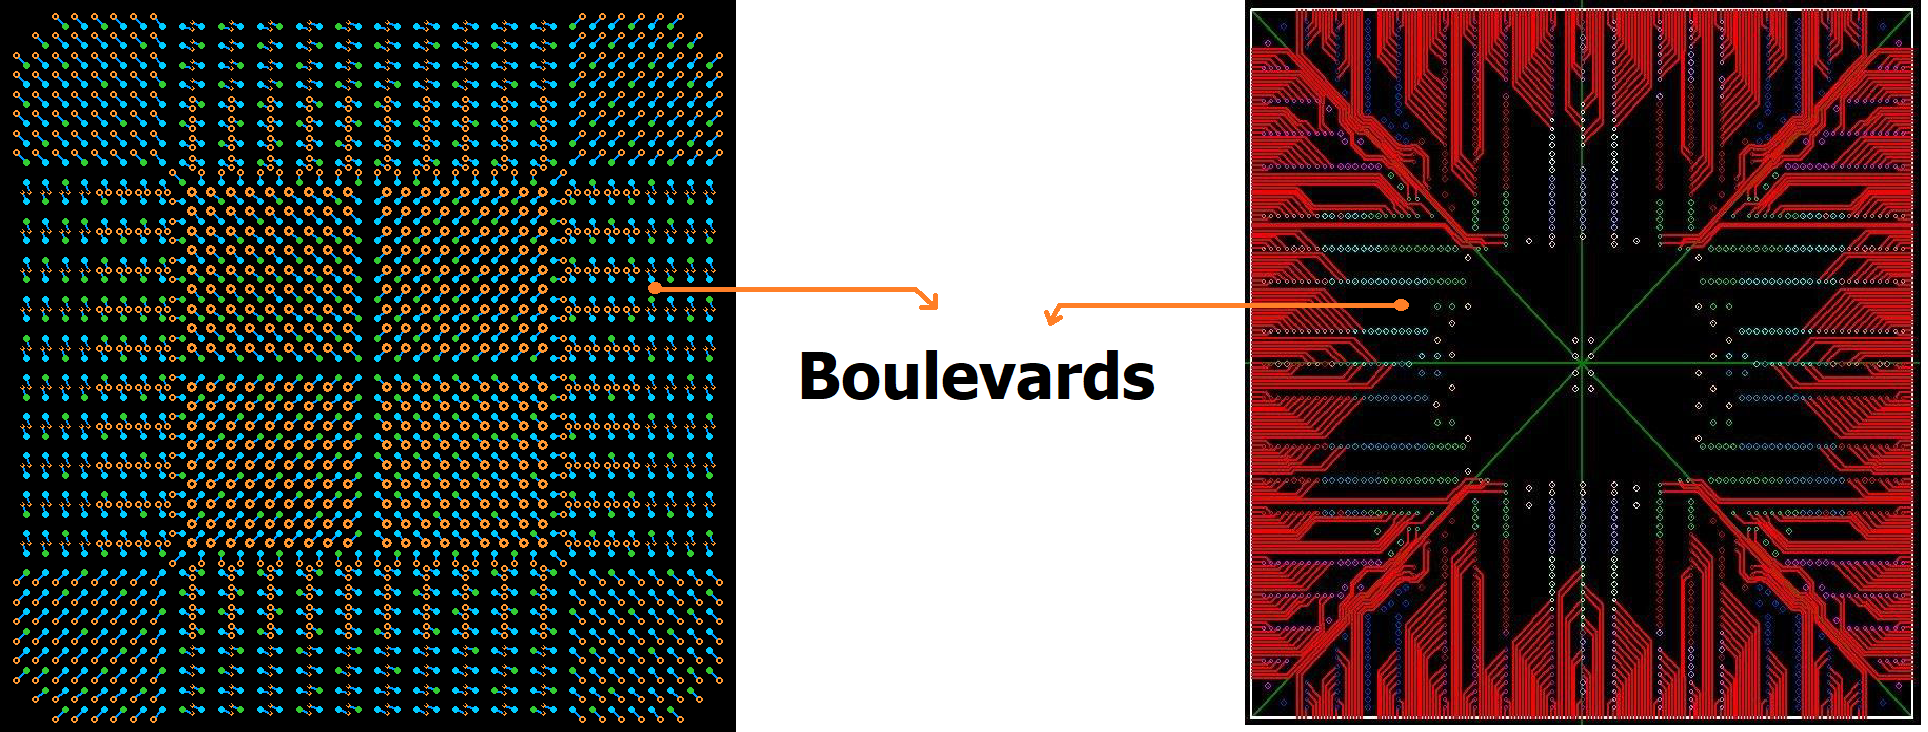 Boulevard arrangement in BGA